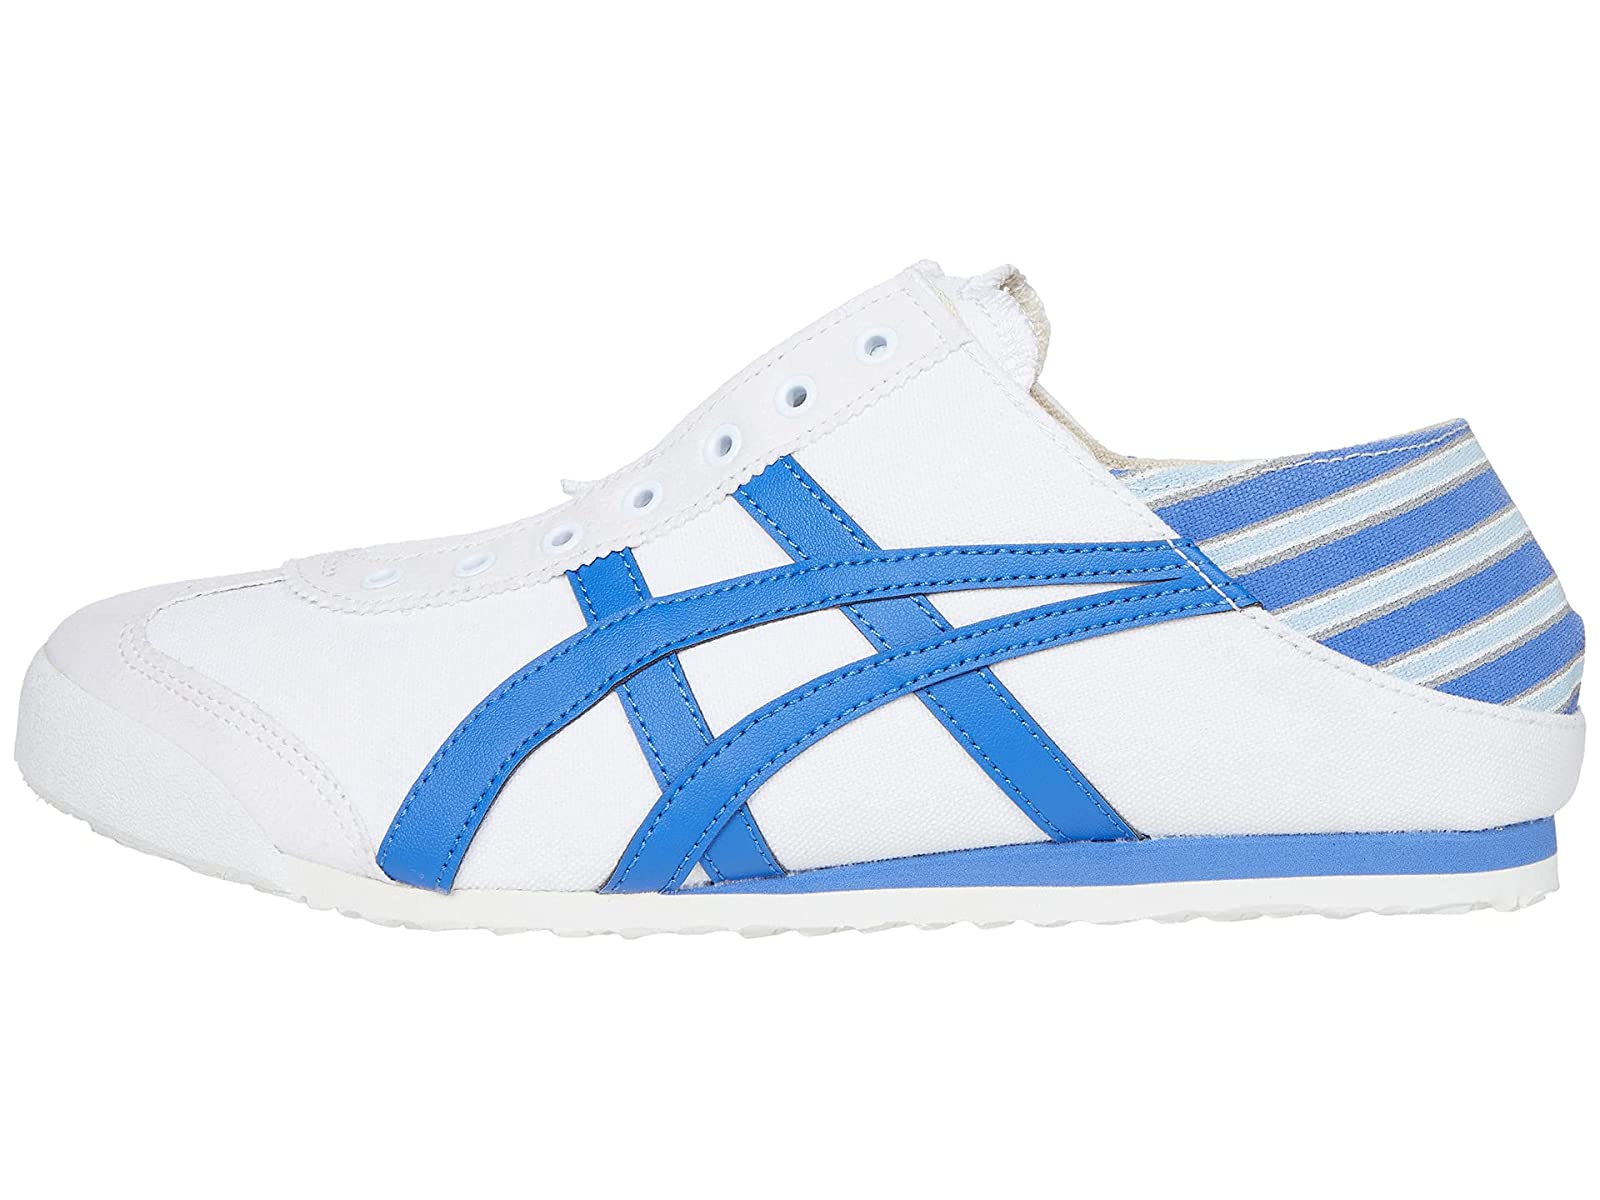 miniature 17 - Adulte Unisexe Baskets & Athlétique Chaussures Onitsuka Tiger Mexico 66 Paraty